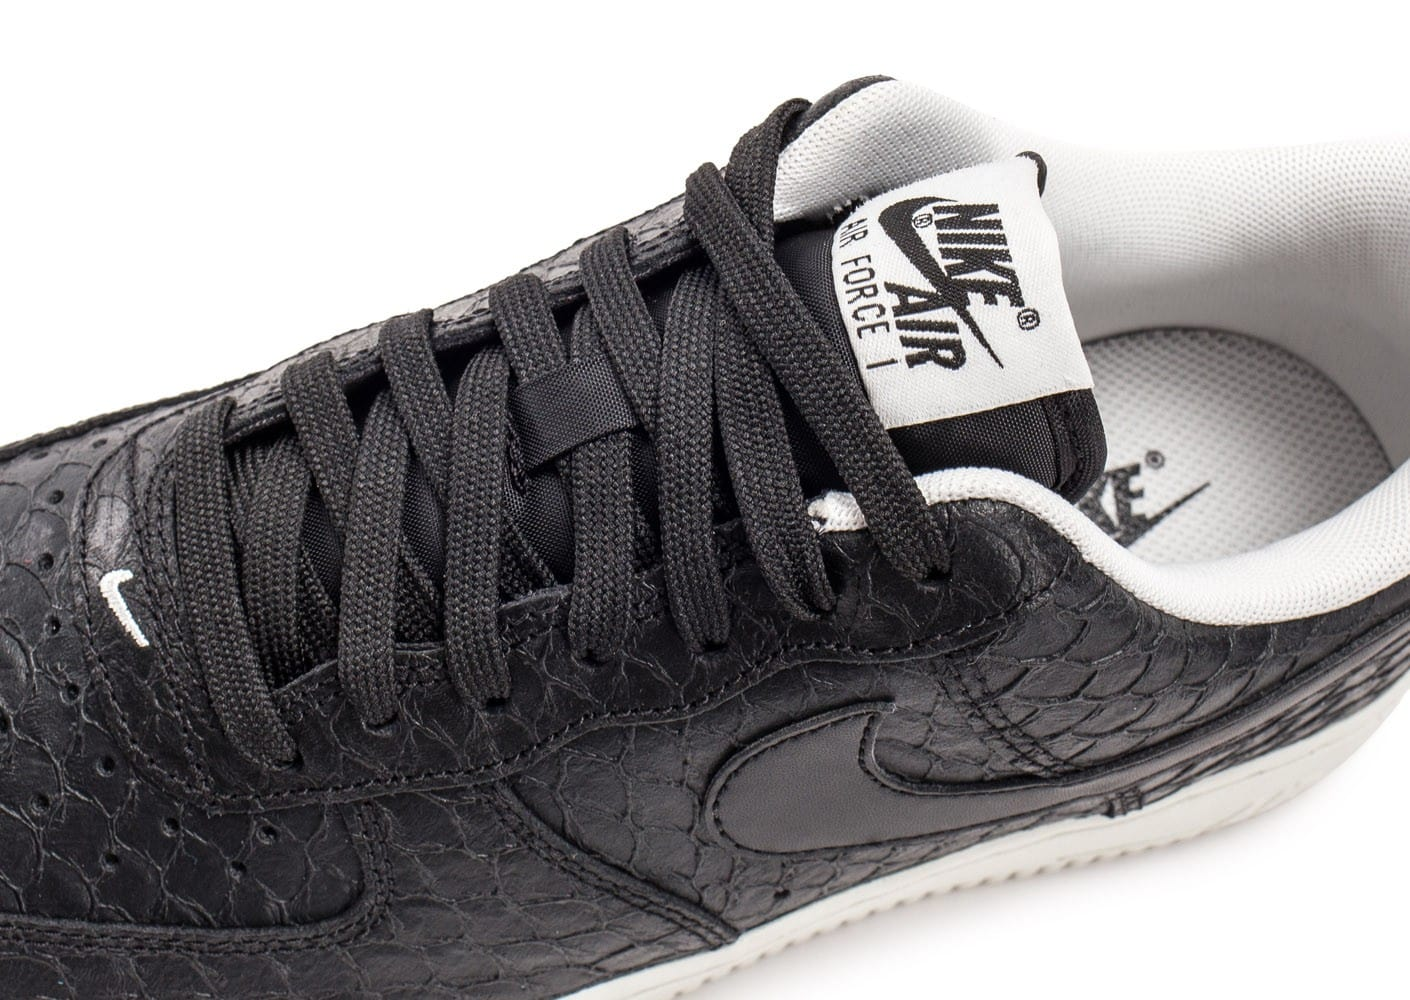 Or Nike Chaussures 07 Pas Force Lv8 Air 1 xqSFfwU